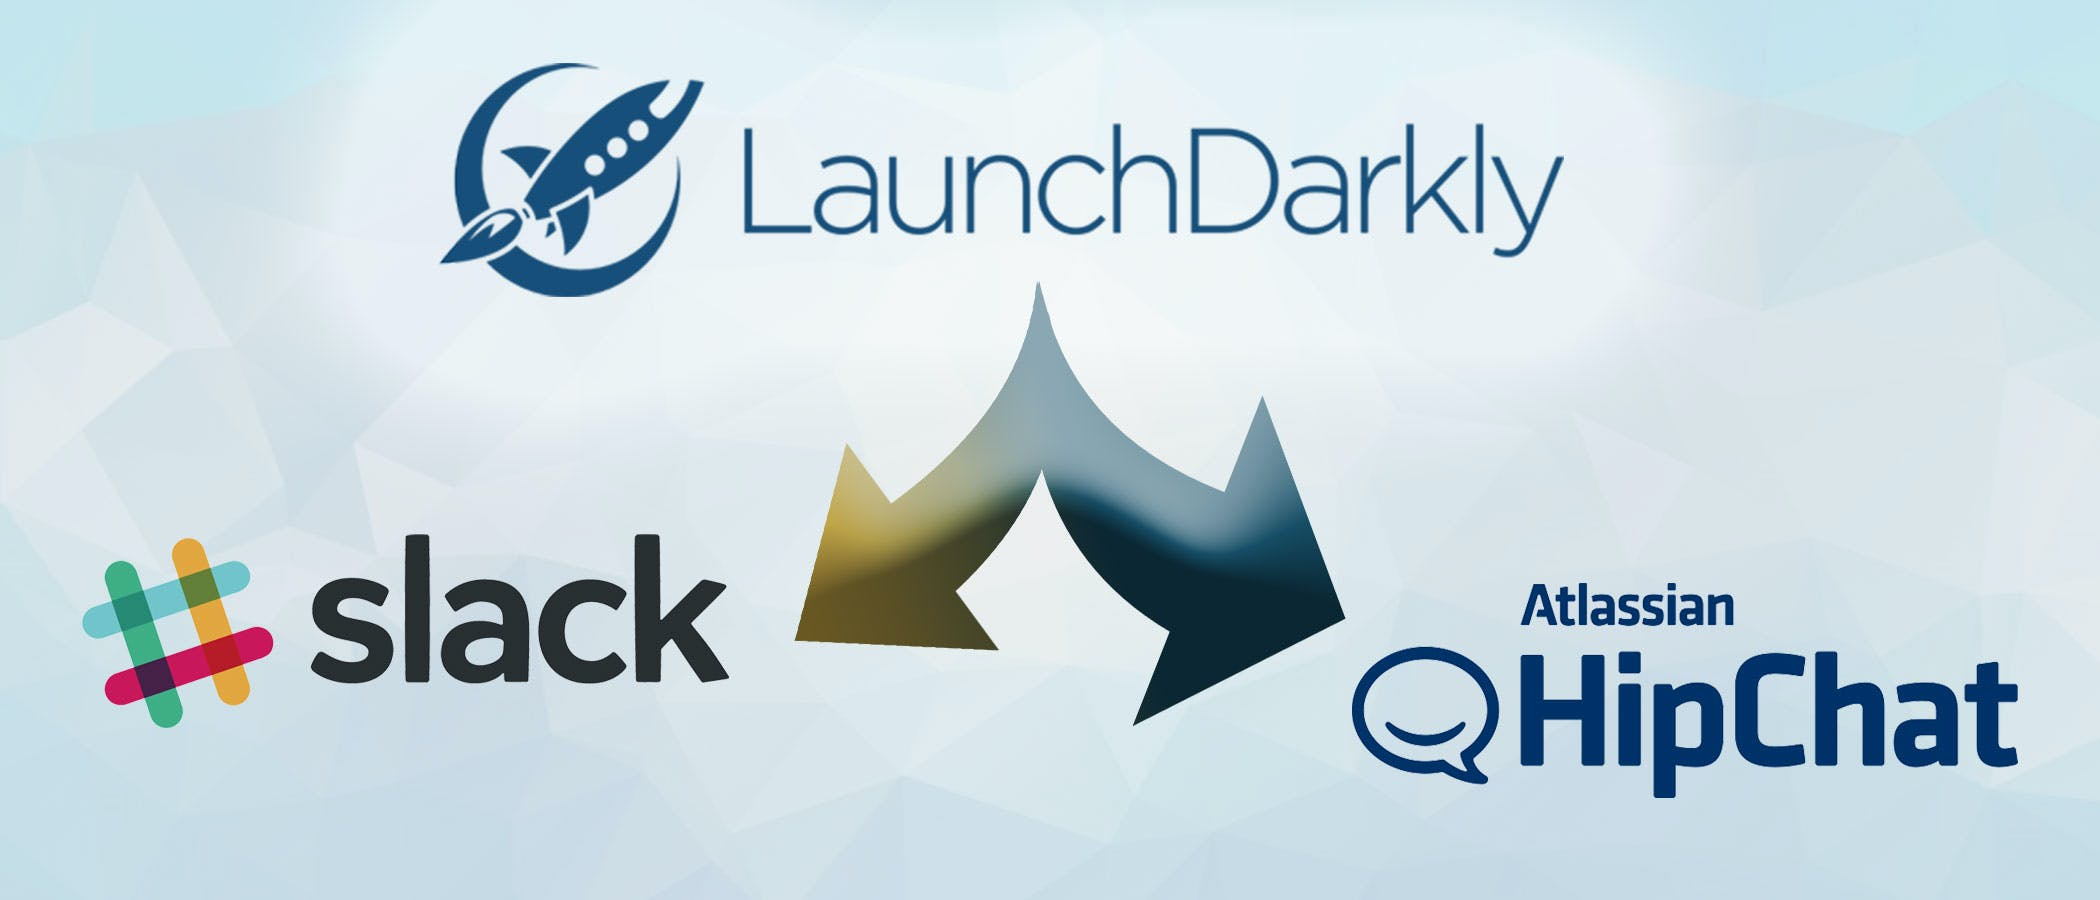 LaunchDarkly Atlassian HipChat and Slack Feature Flag Notifications / Integrations